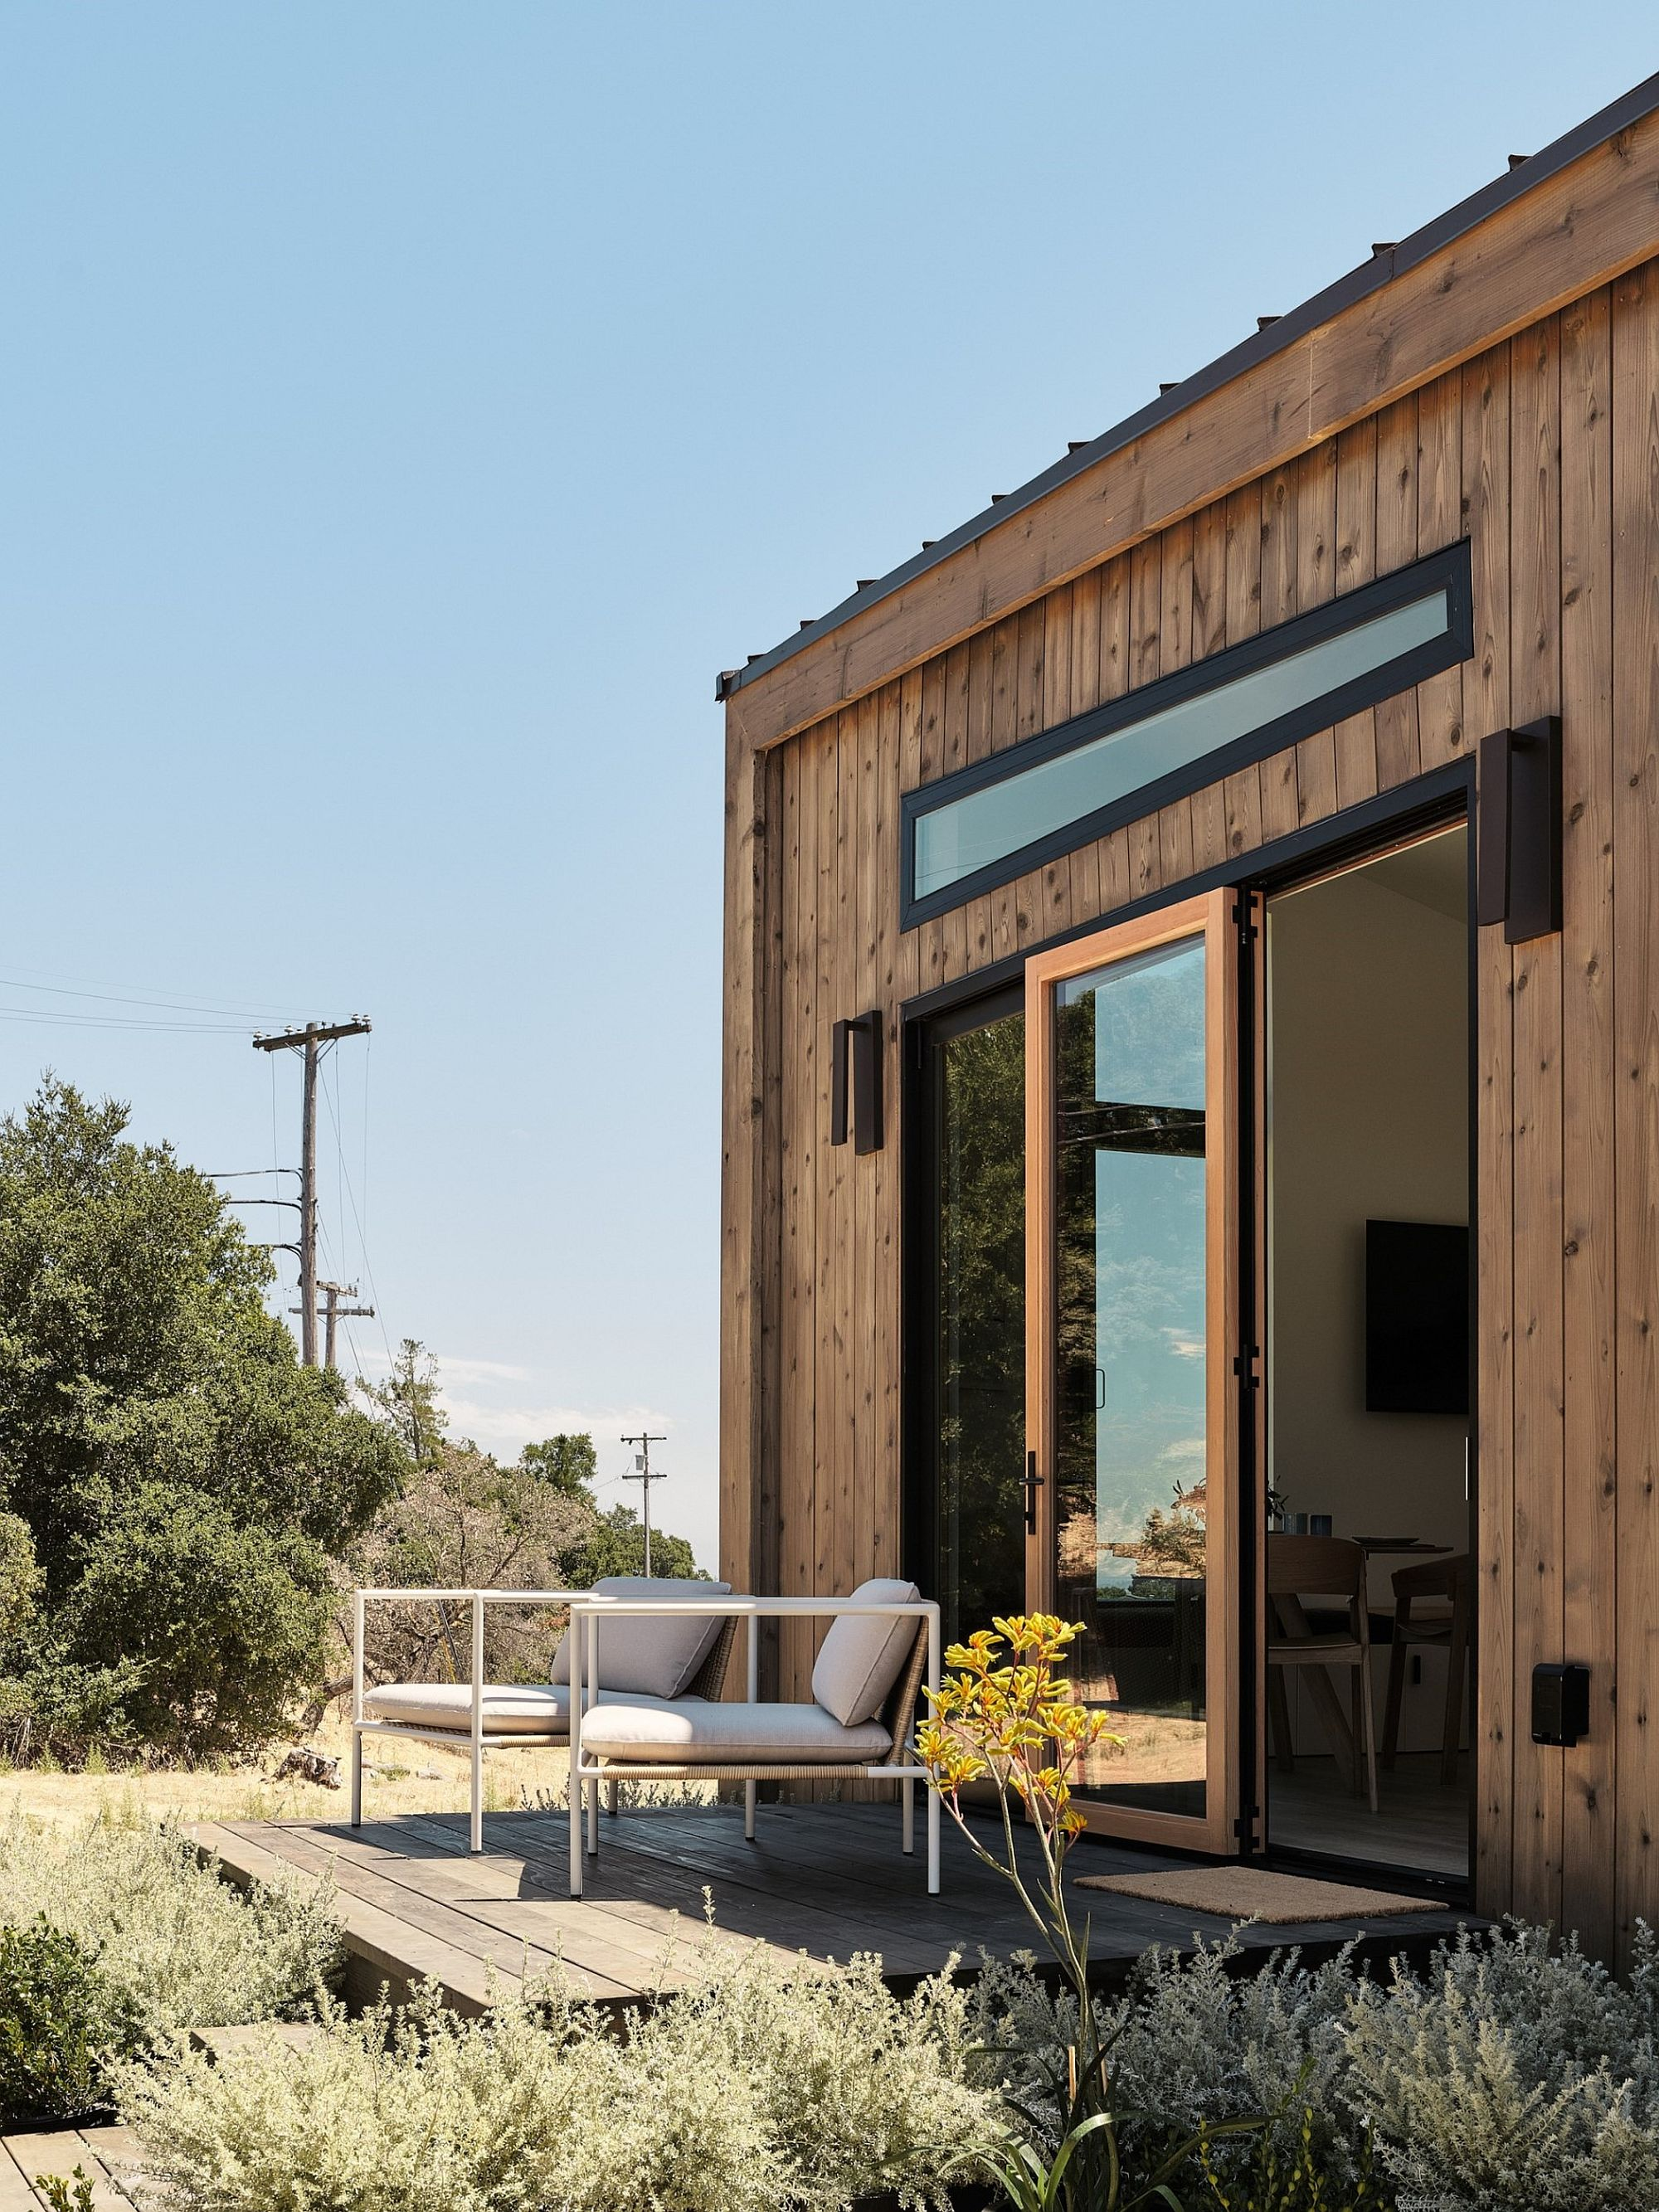 Naturally-stained cedar siding shapes the exterior of the house